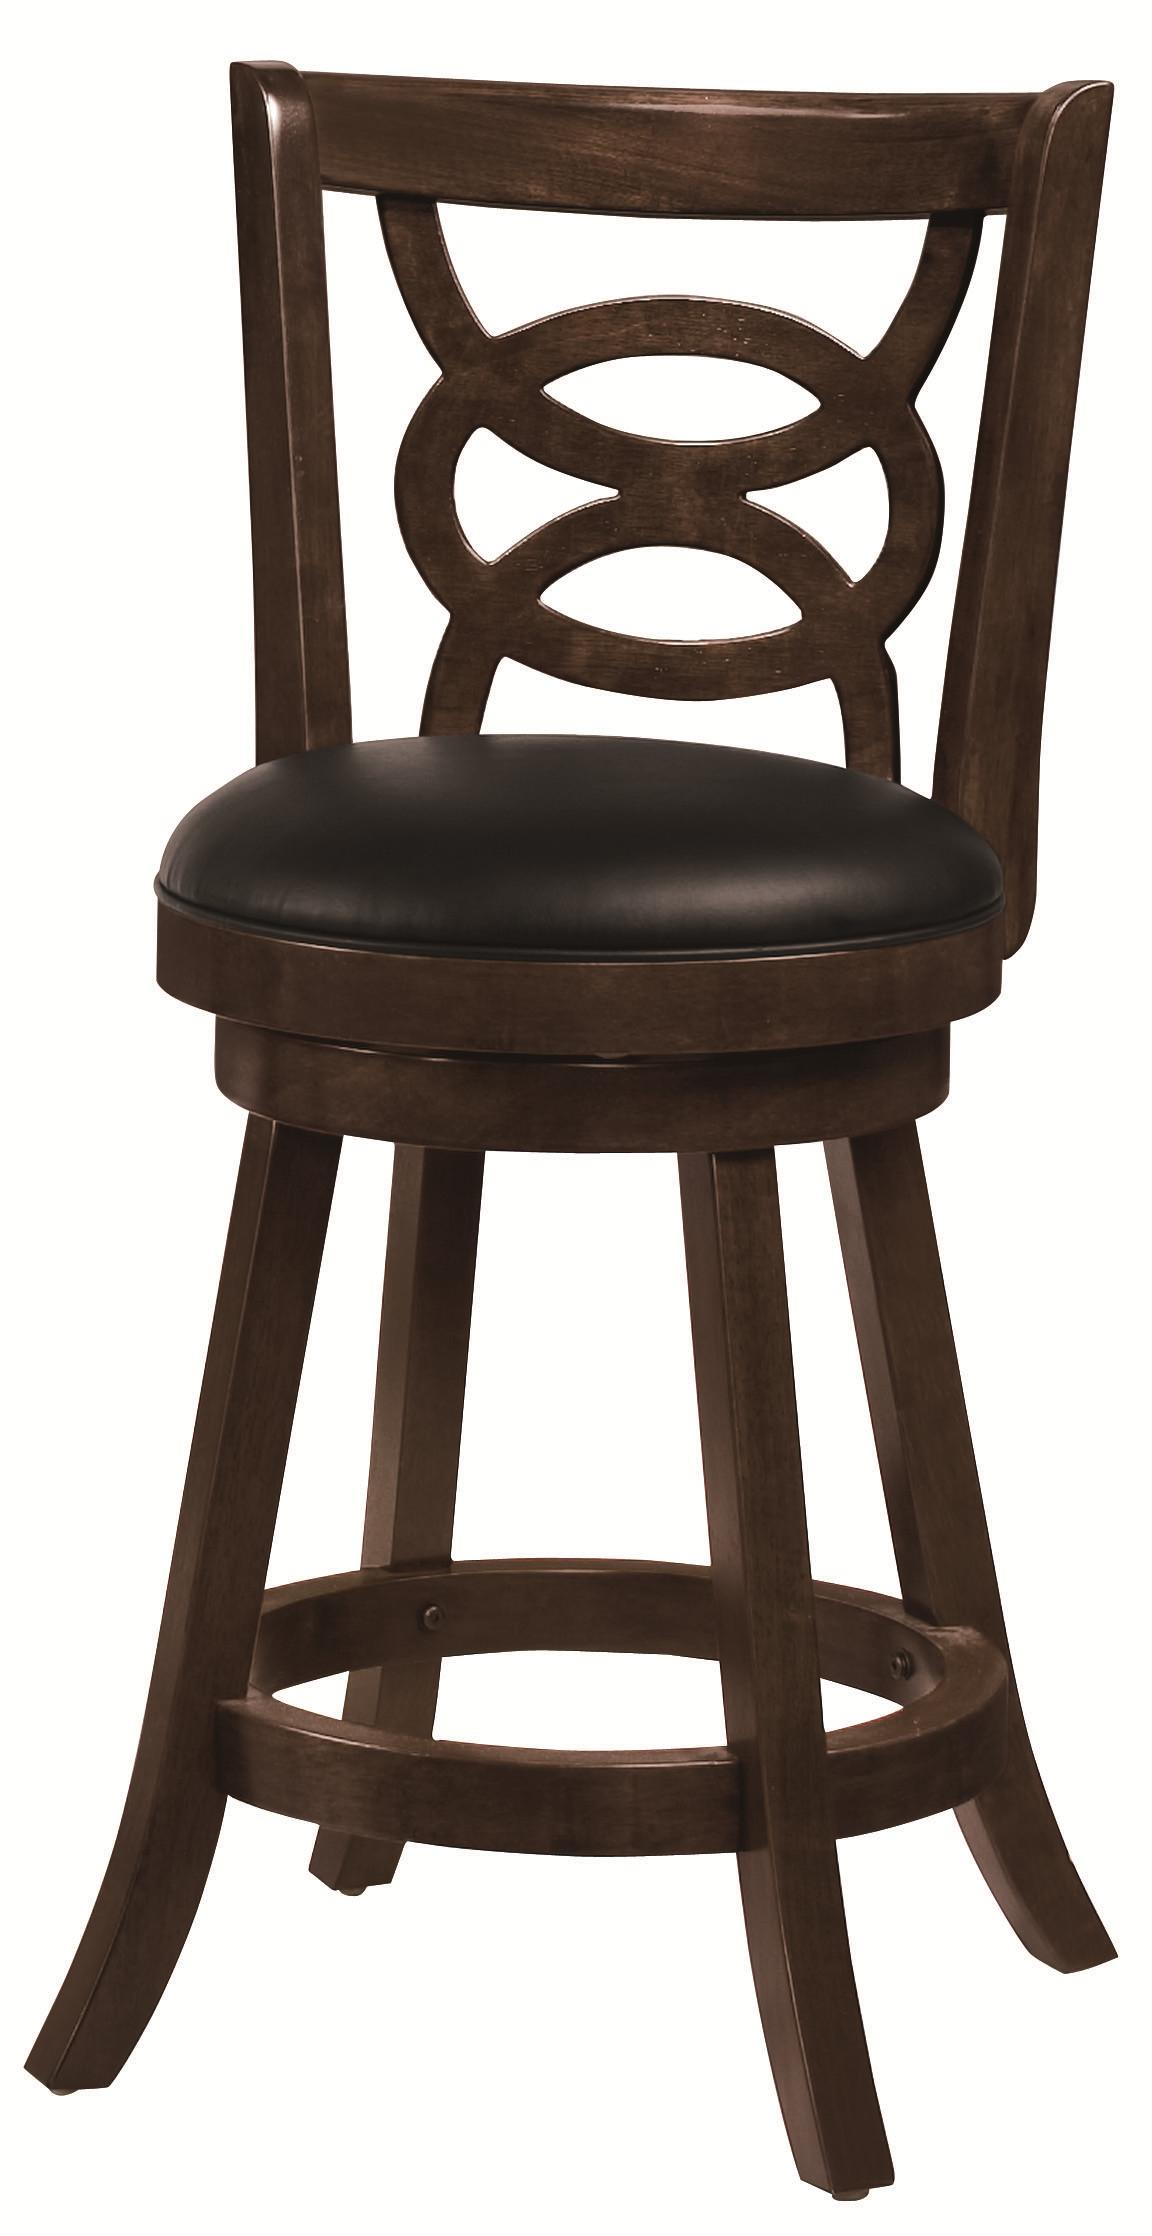 """Dining Chairs and Bar Stools 24"""" Swivel Bar Stool with Upholstered Seat by Coaster at Northeast Factory Direct"""